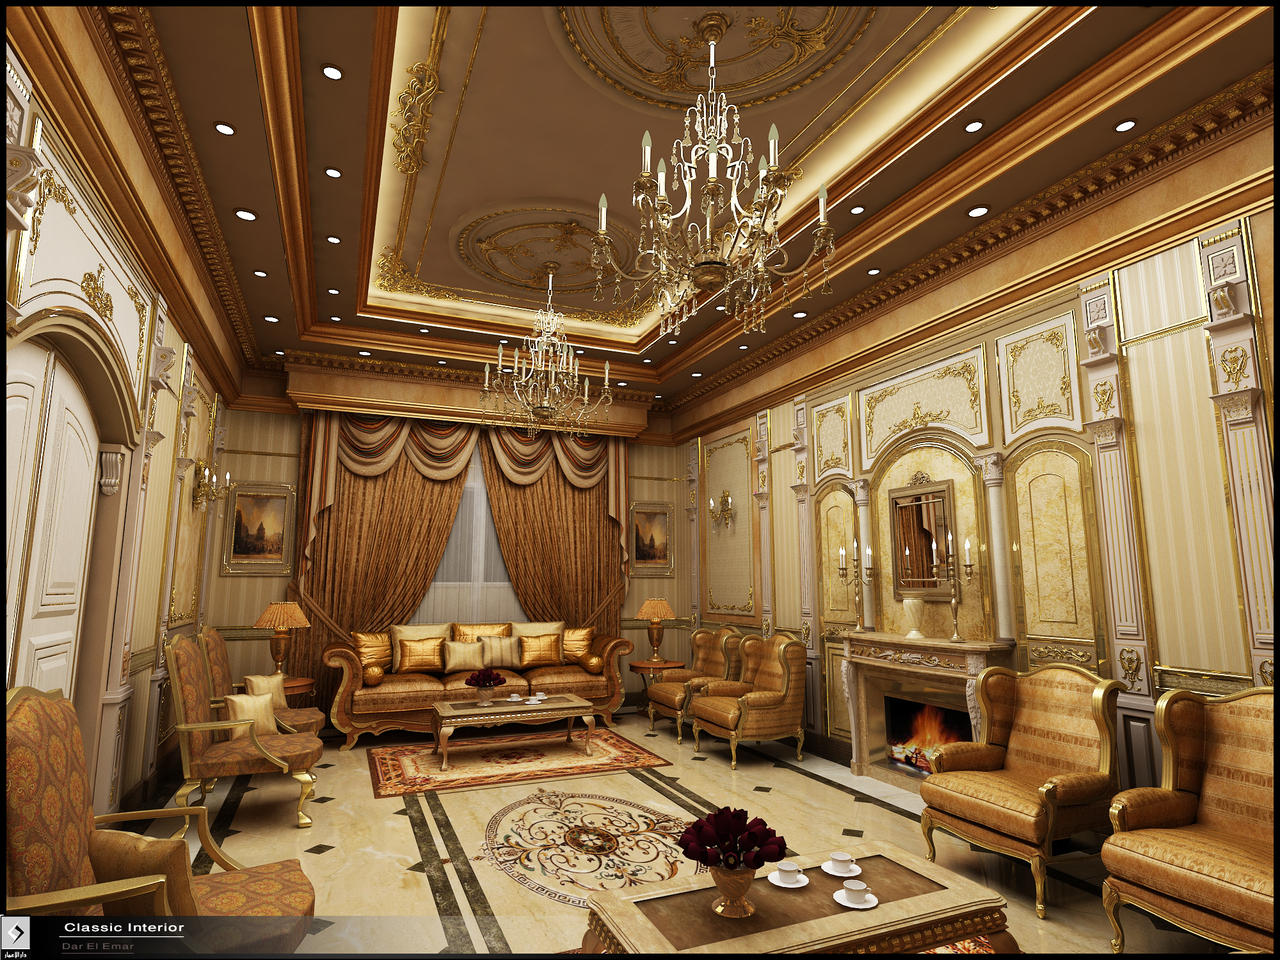 Classic interior in ksa by amr maged on deviantart for Classic house design interior